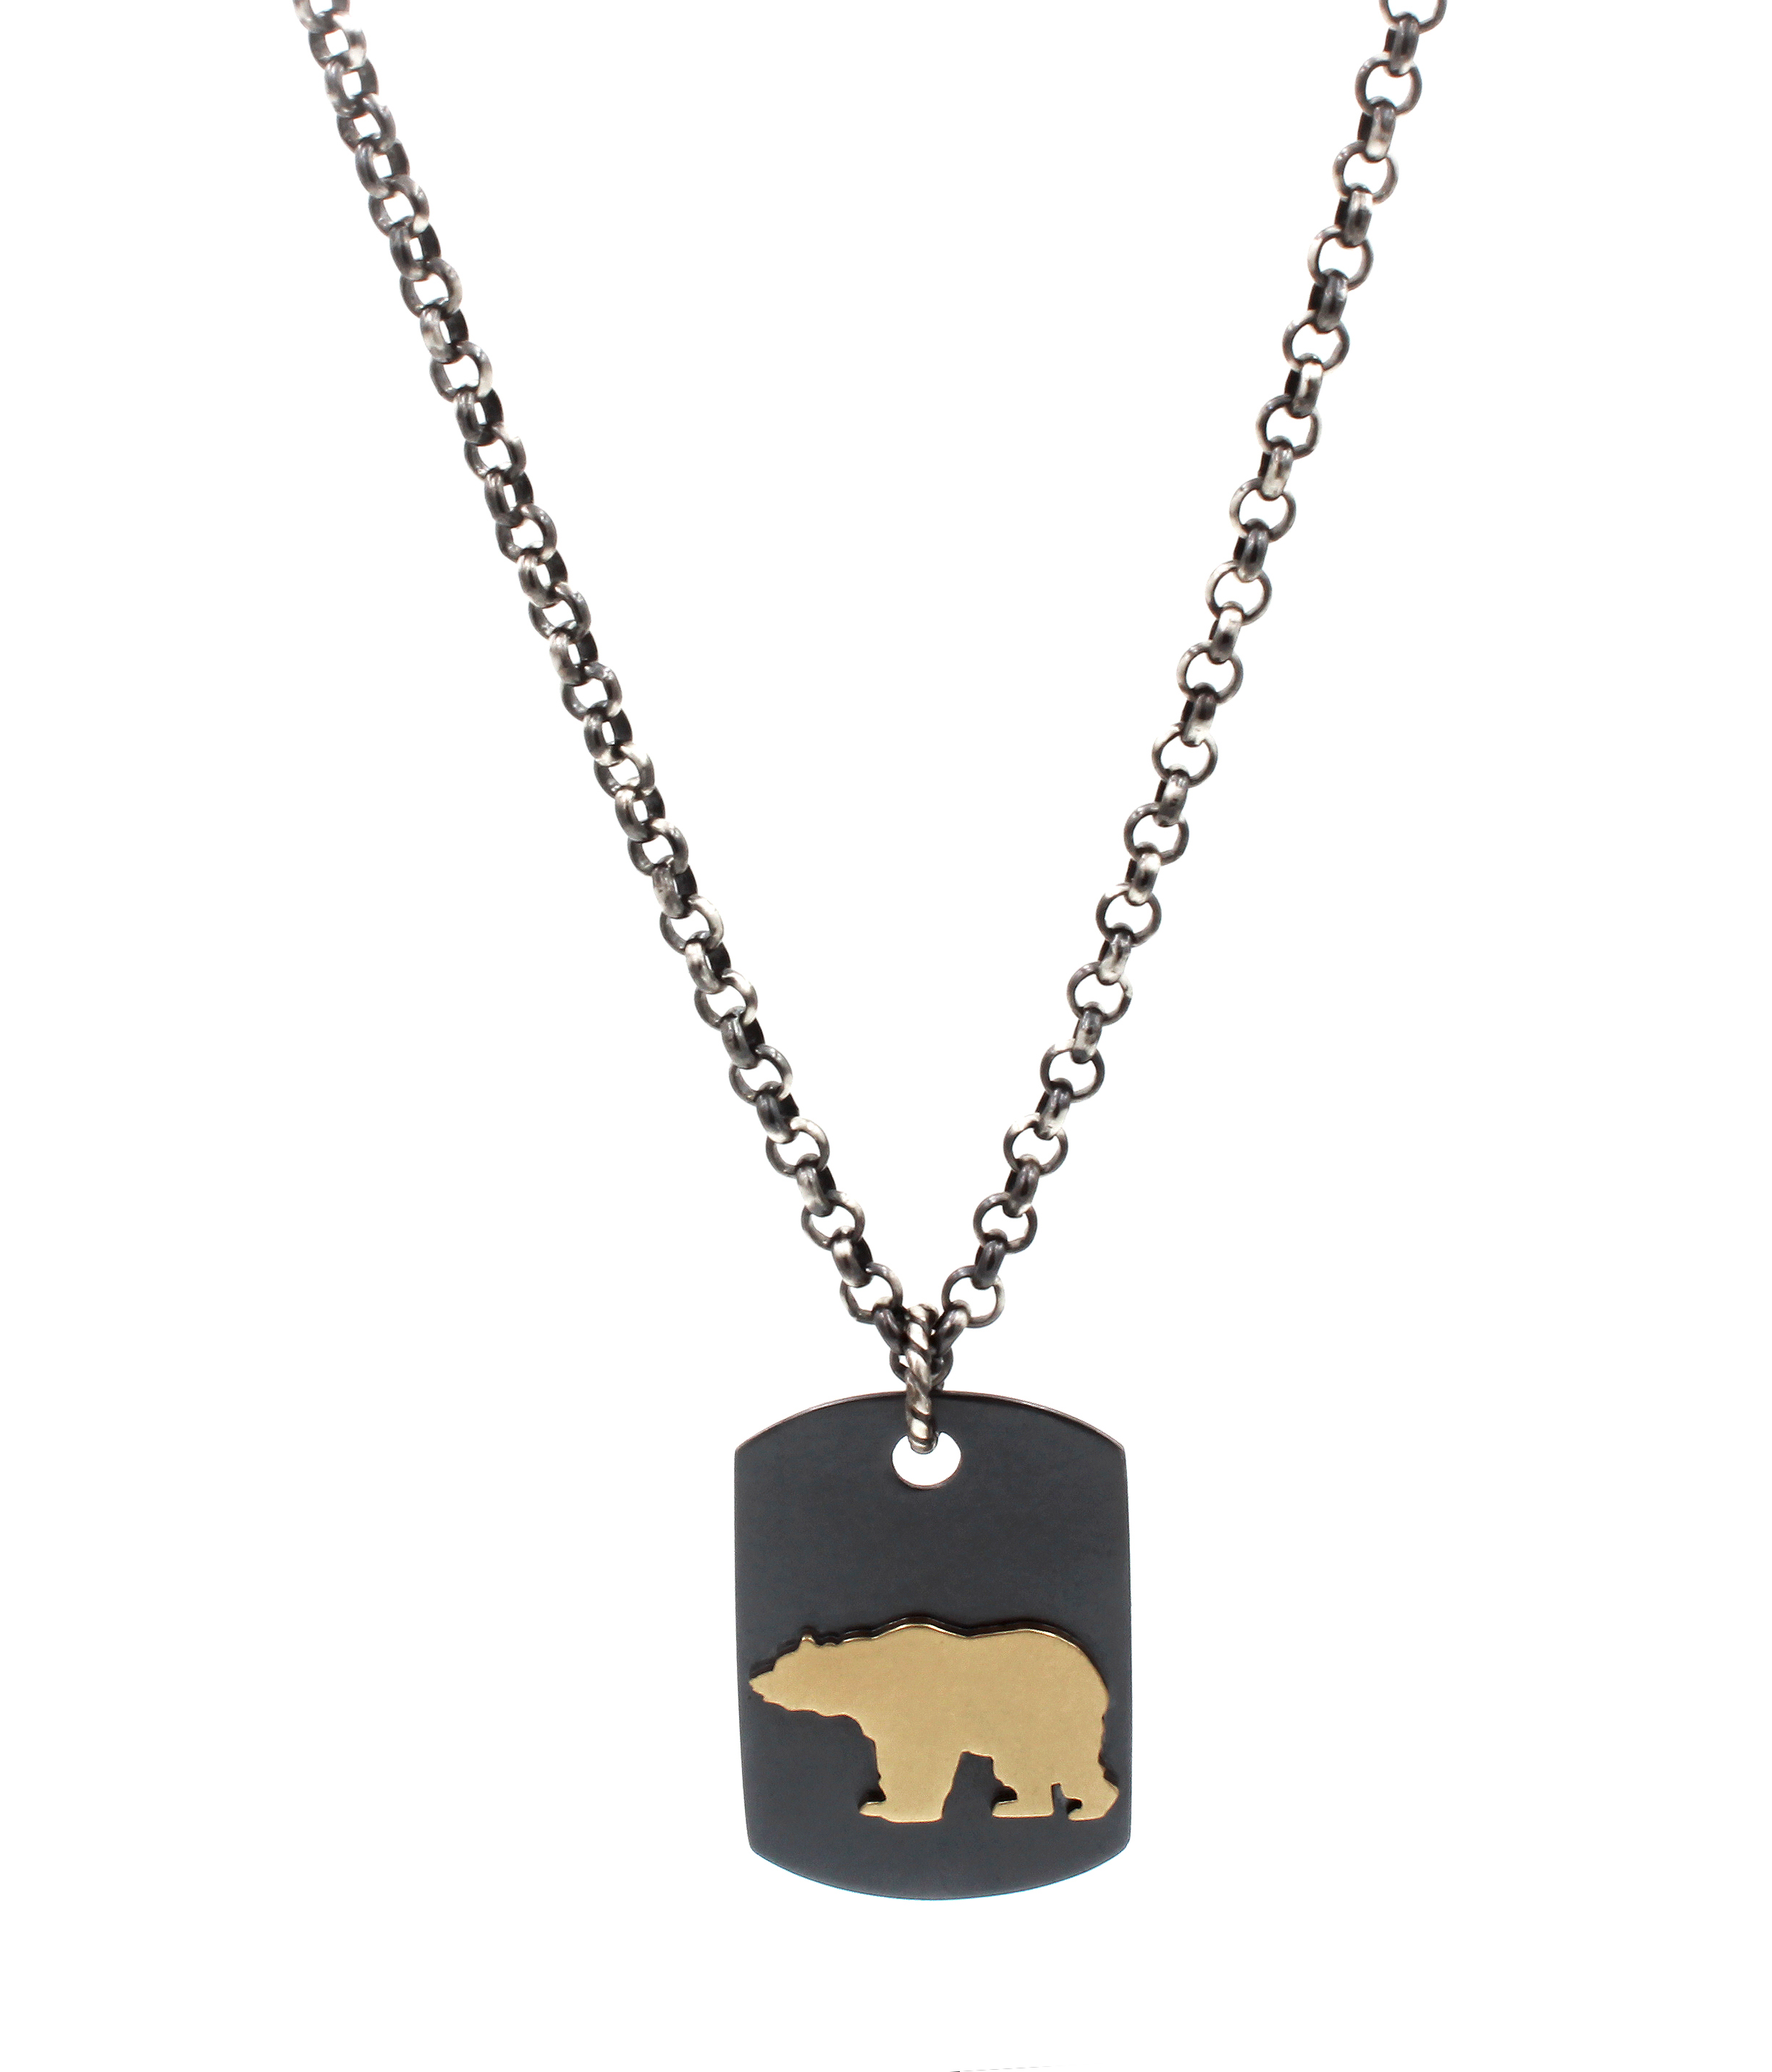 Bear Dog Tag Necklace.jpg